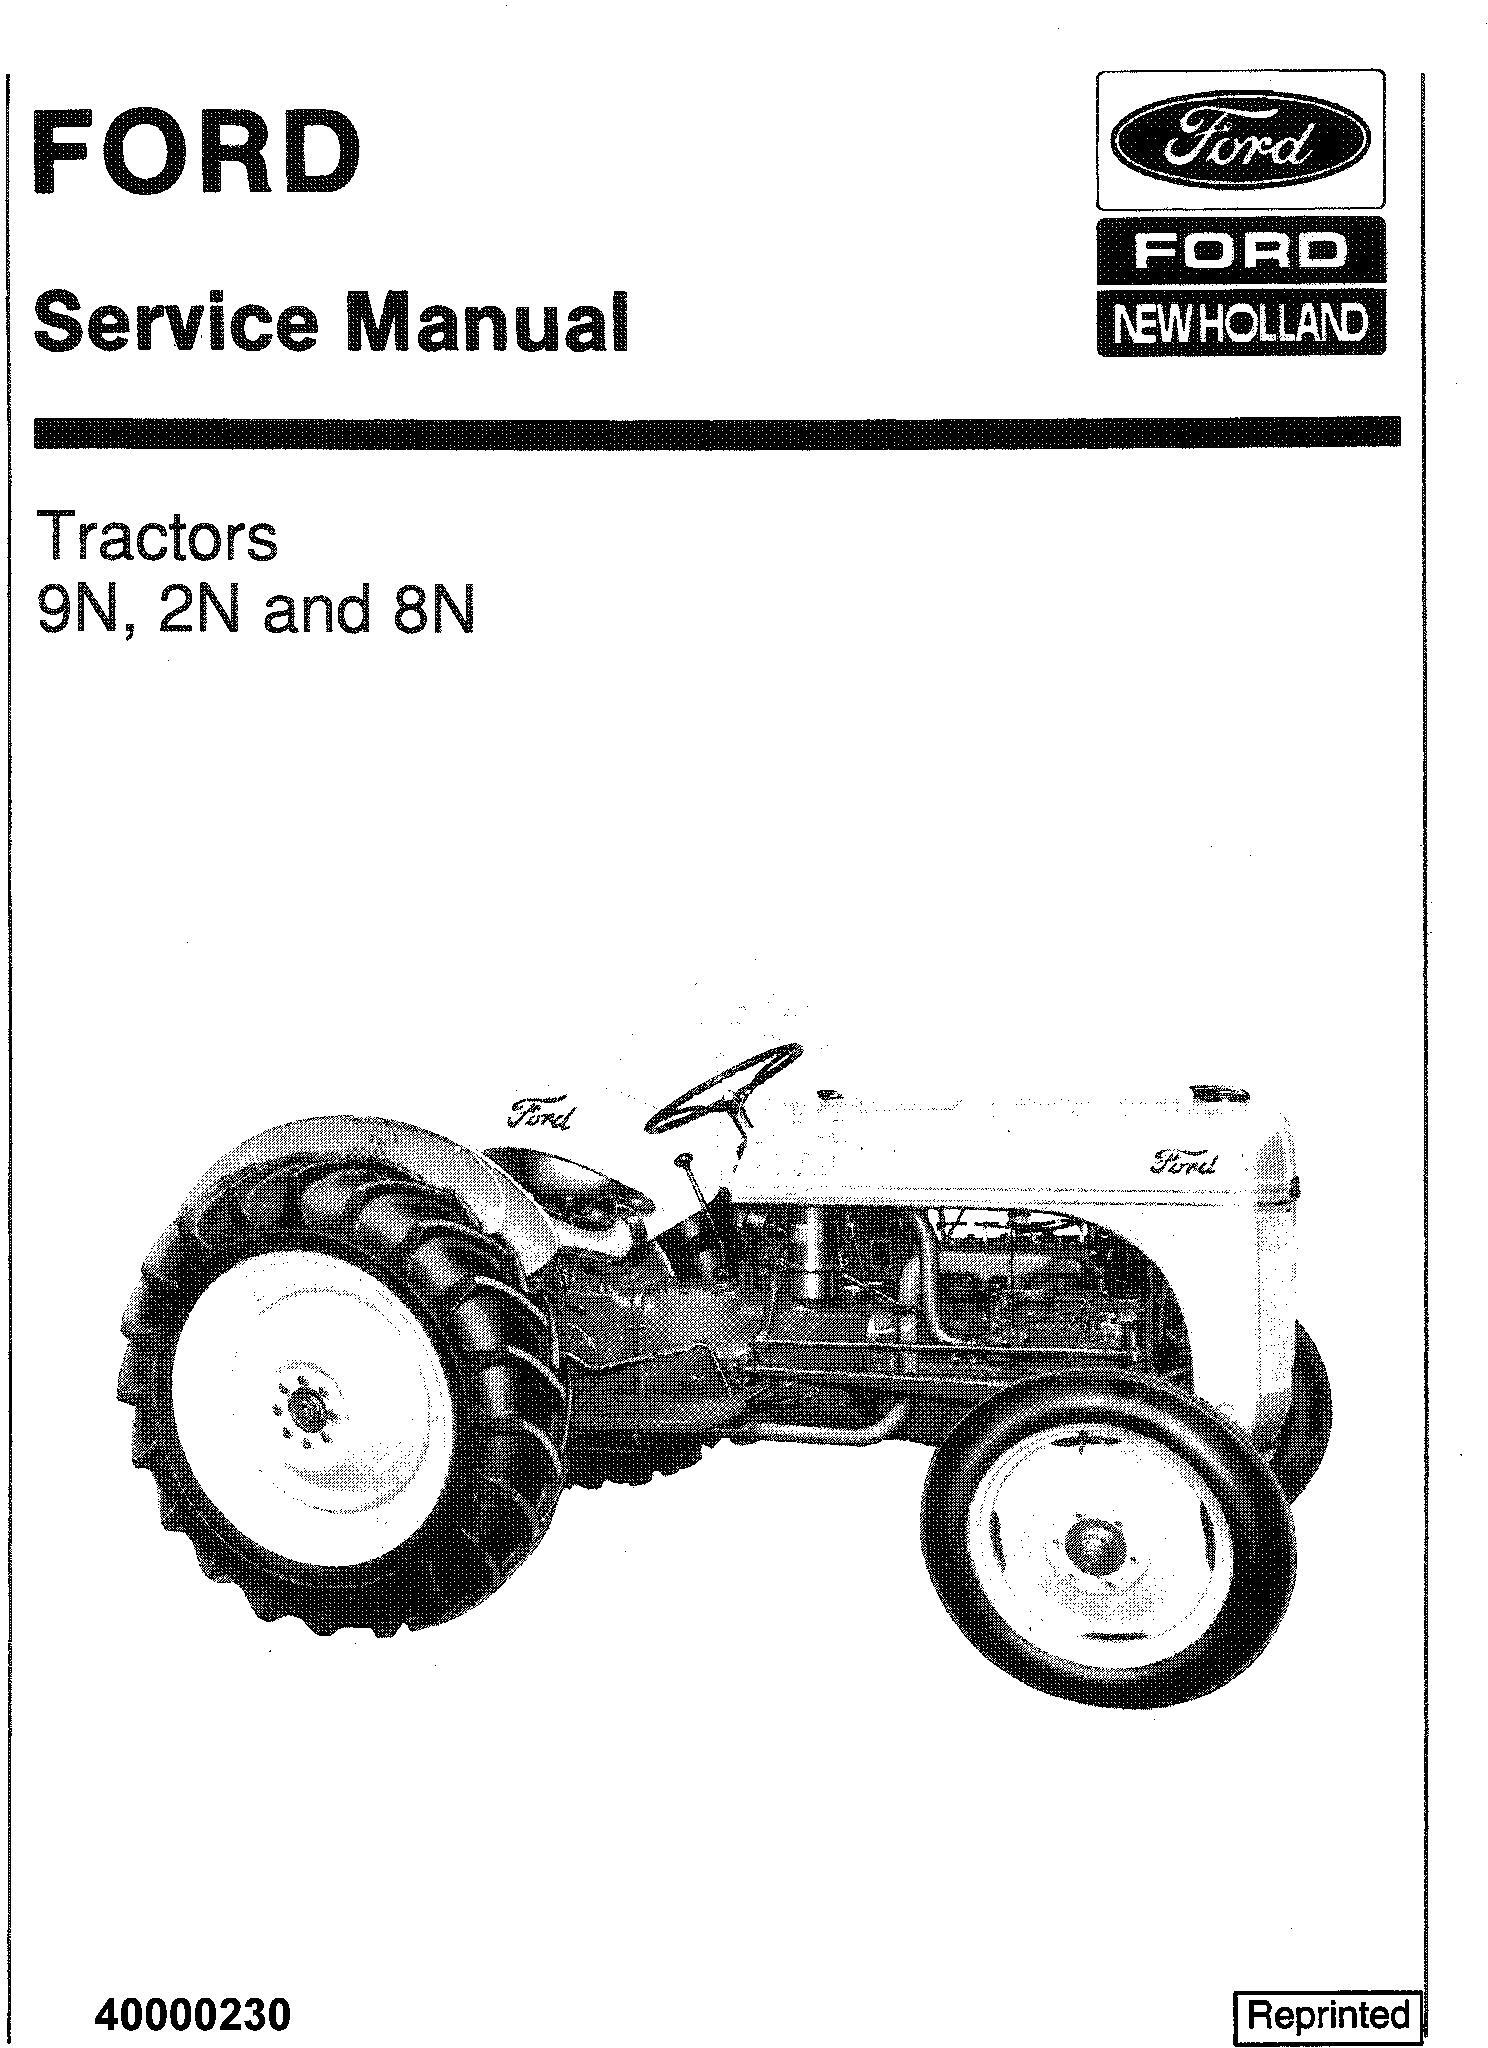 Ford 9N 2N 8N Tractor Service Manual / Deere Technical Manuals